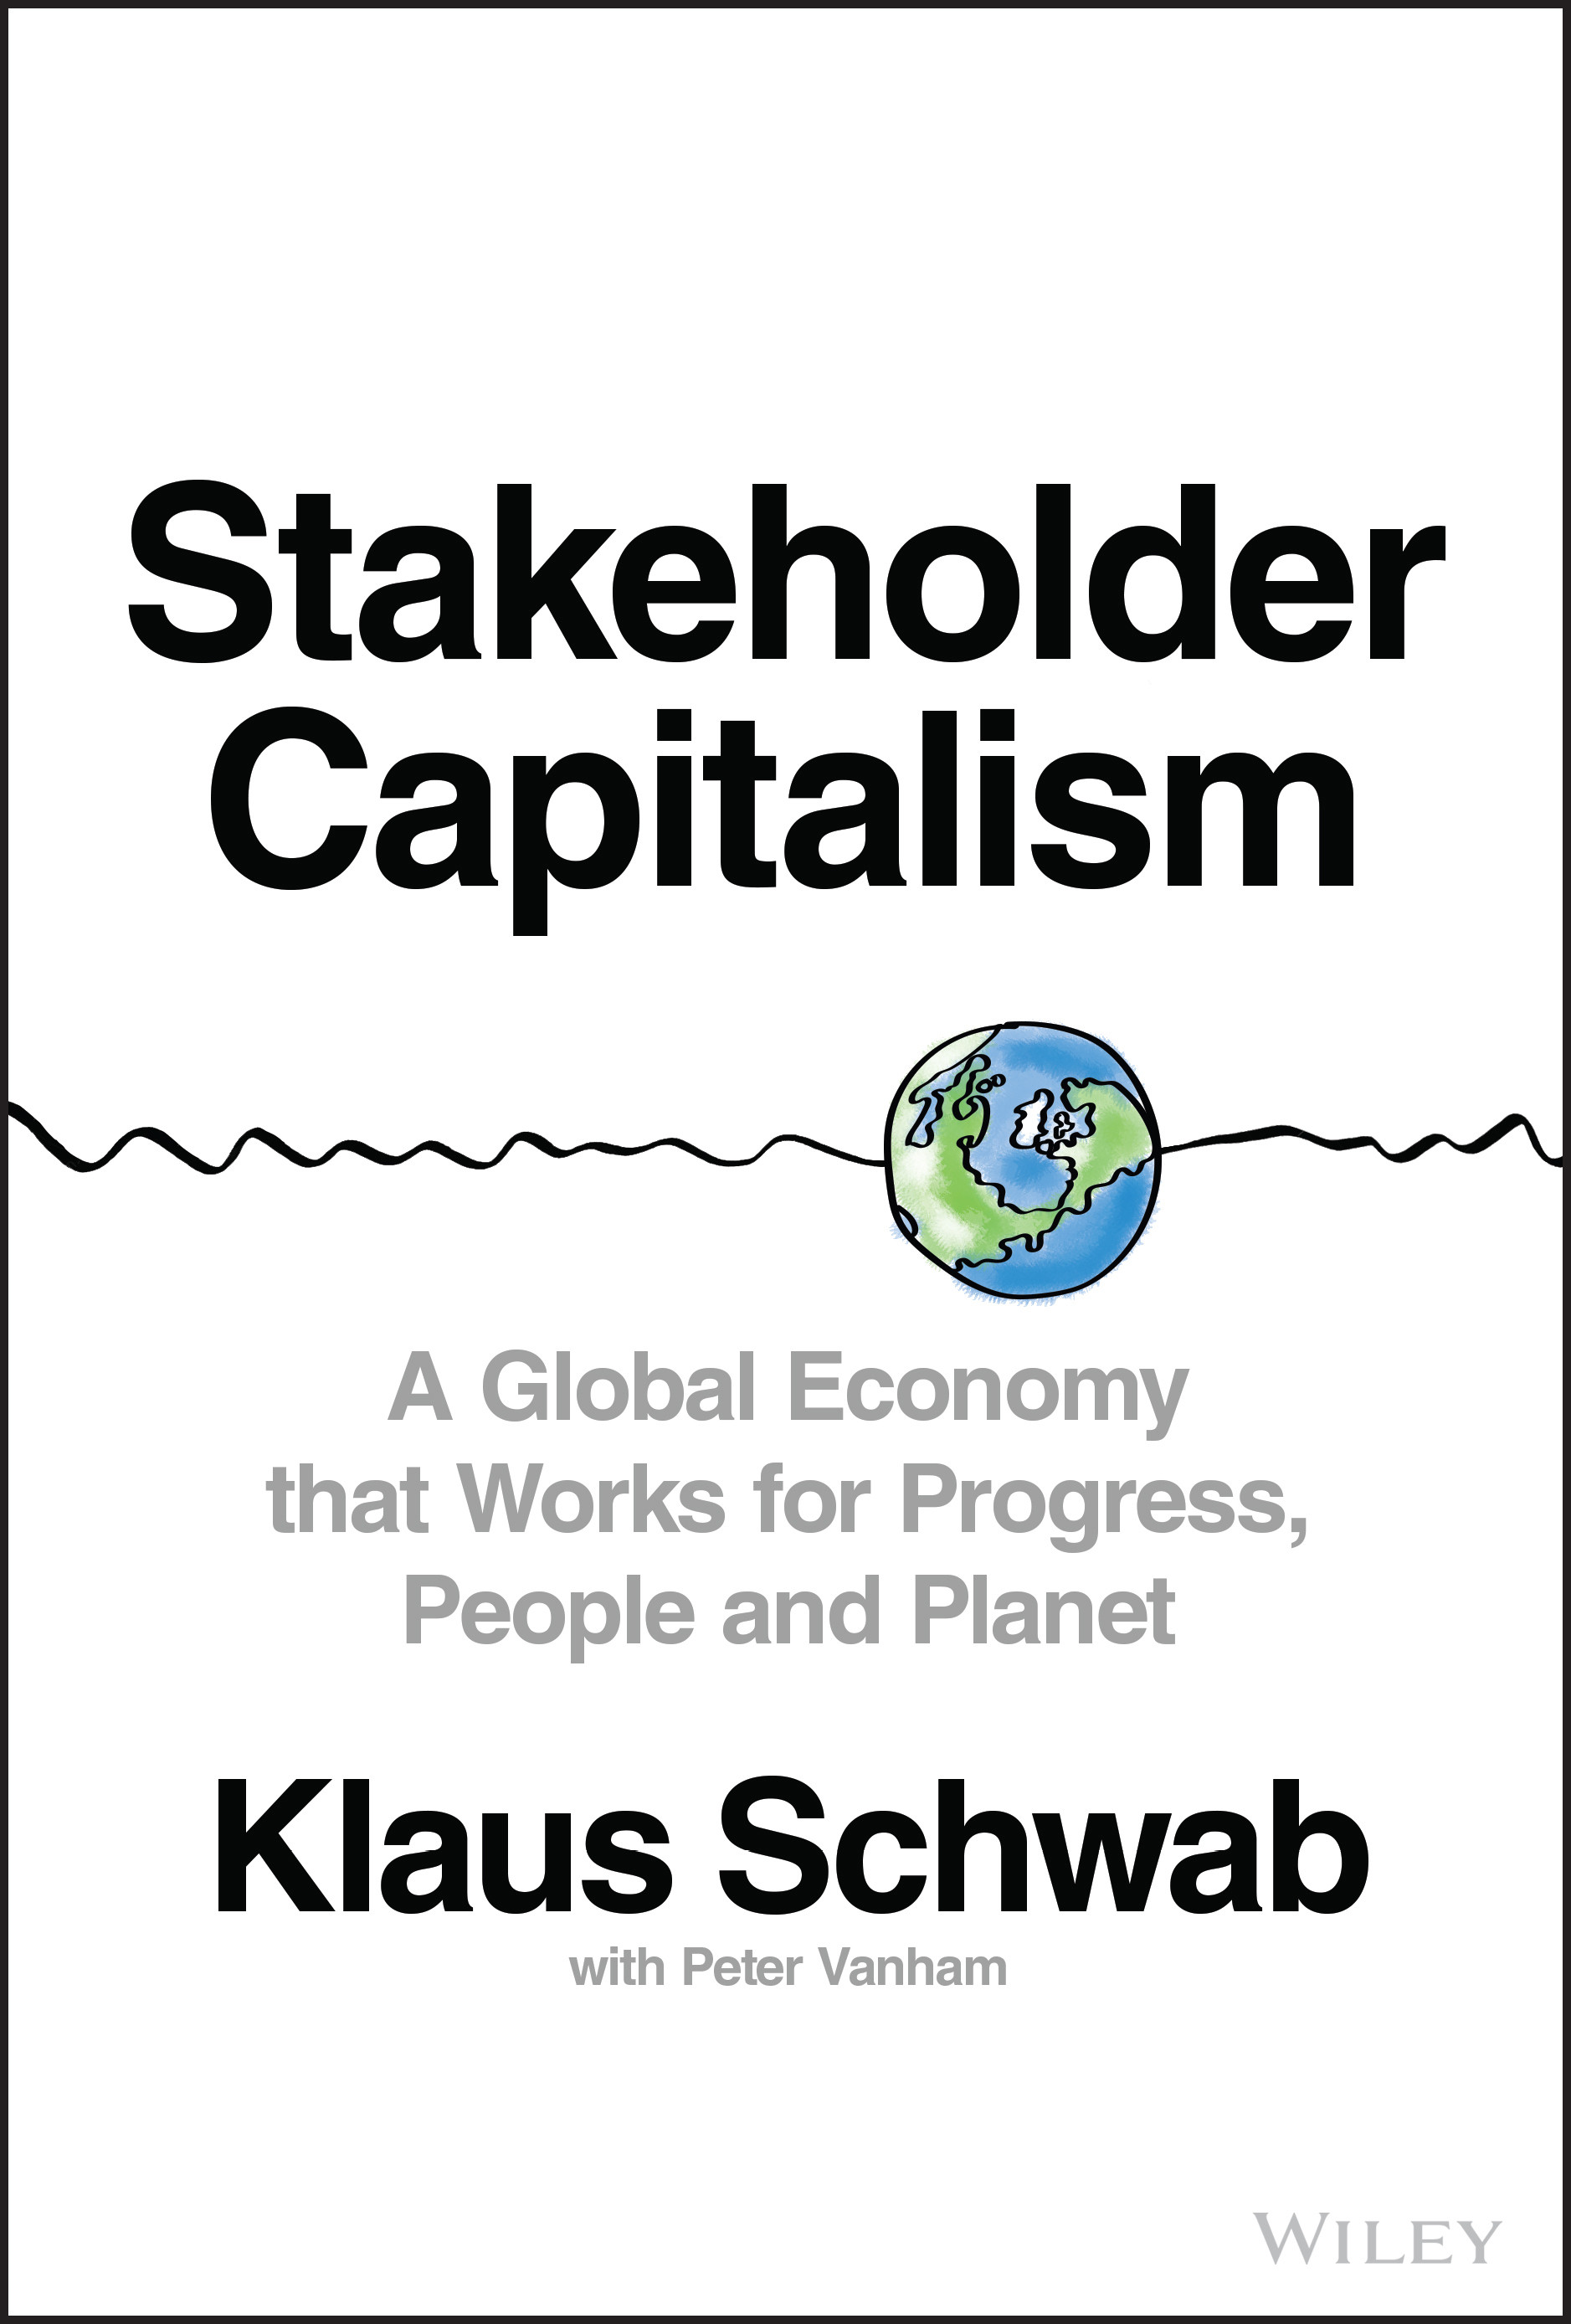 The white front cover of Stakeholder Capitalism with a small colourful illustration of the earth and large simple black text for the title, subtitle and authors